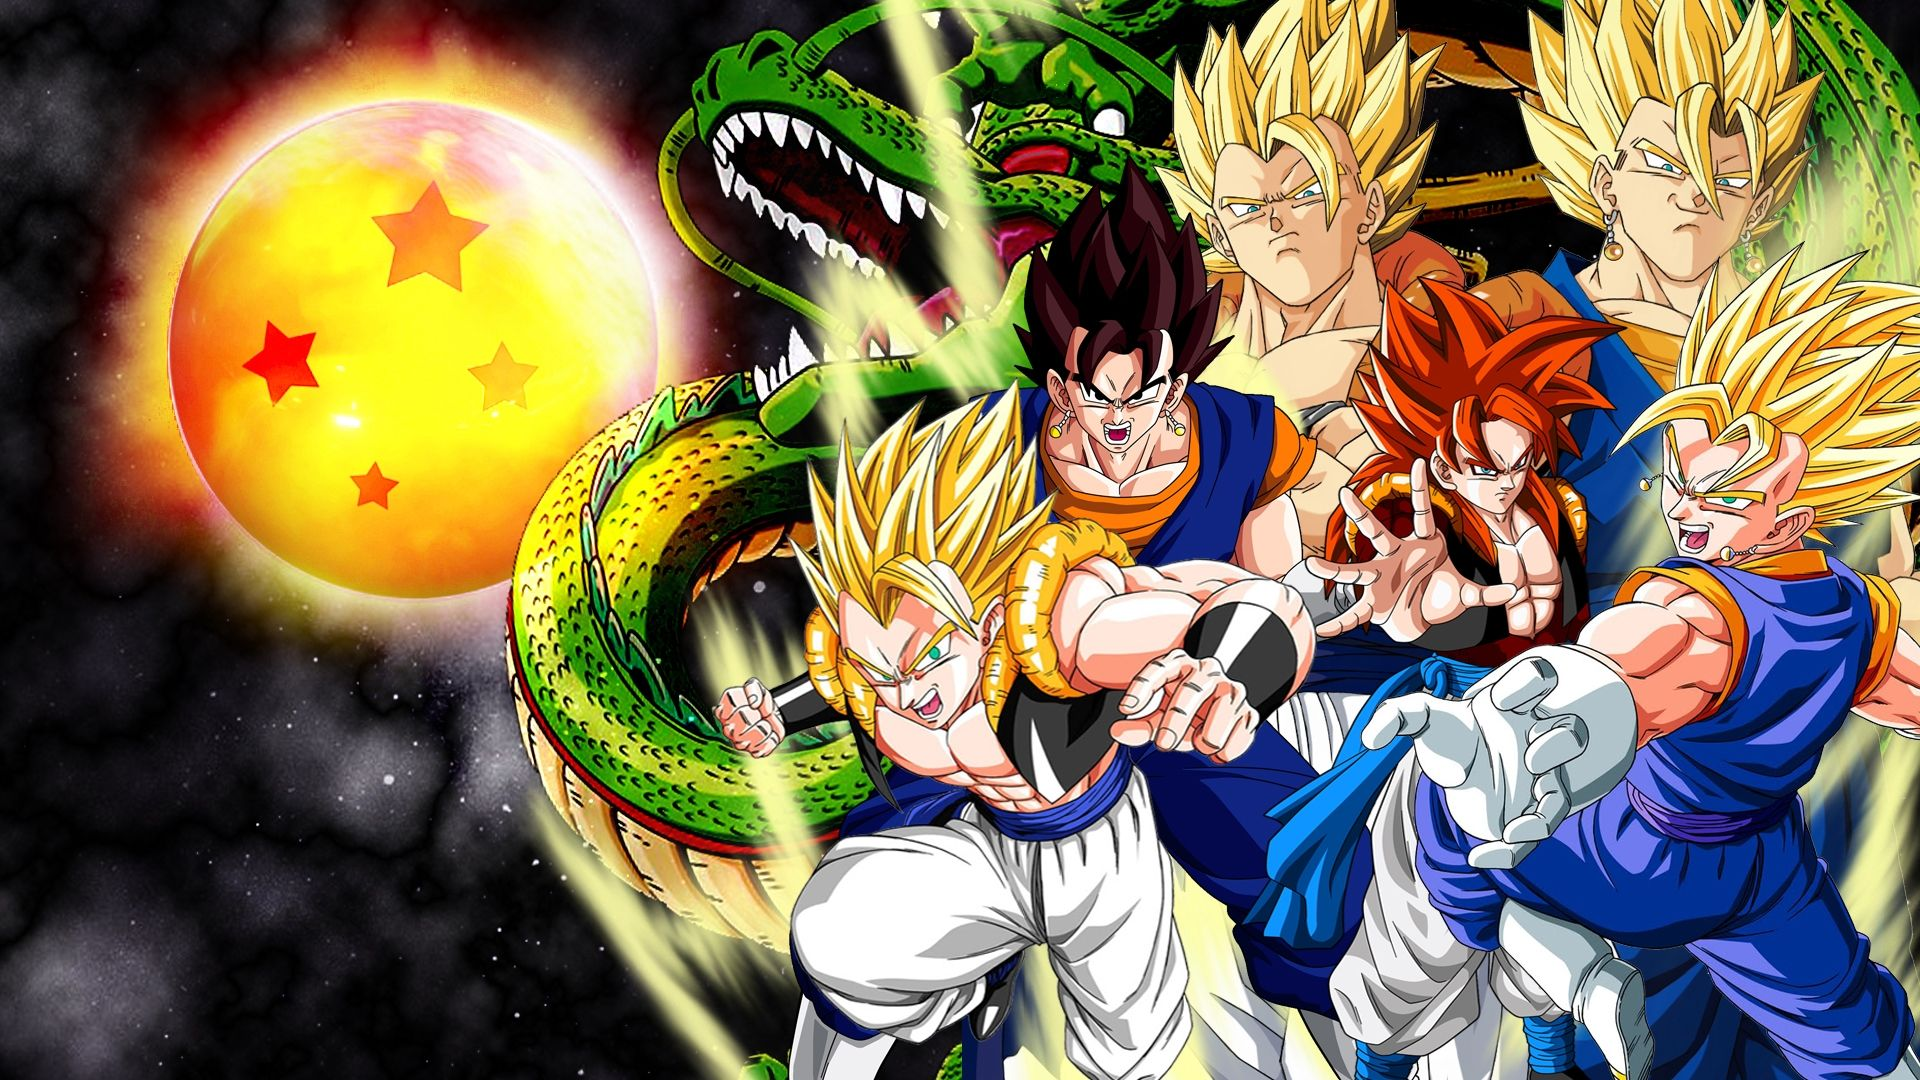 Cool Wallpaper Of Dragon Ball Z Hd Download Free Cool Wallpaper Of